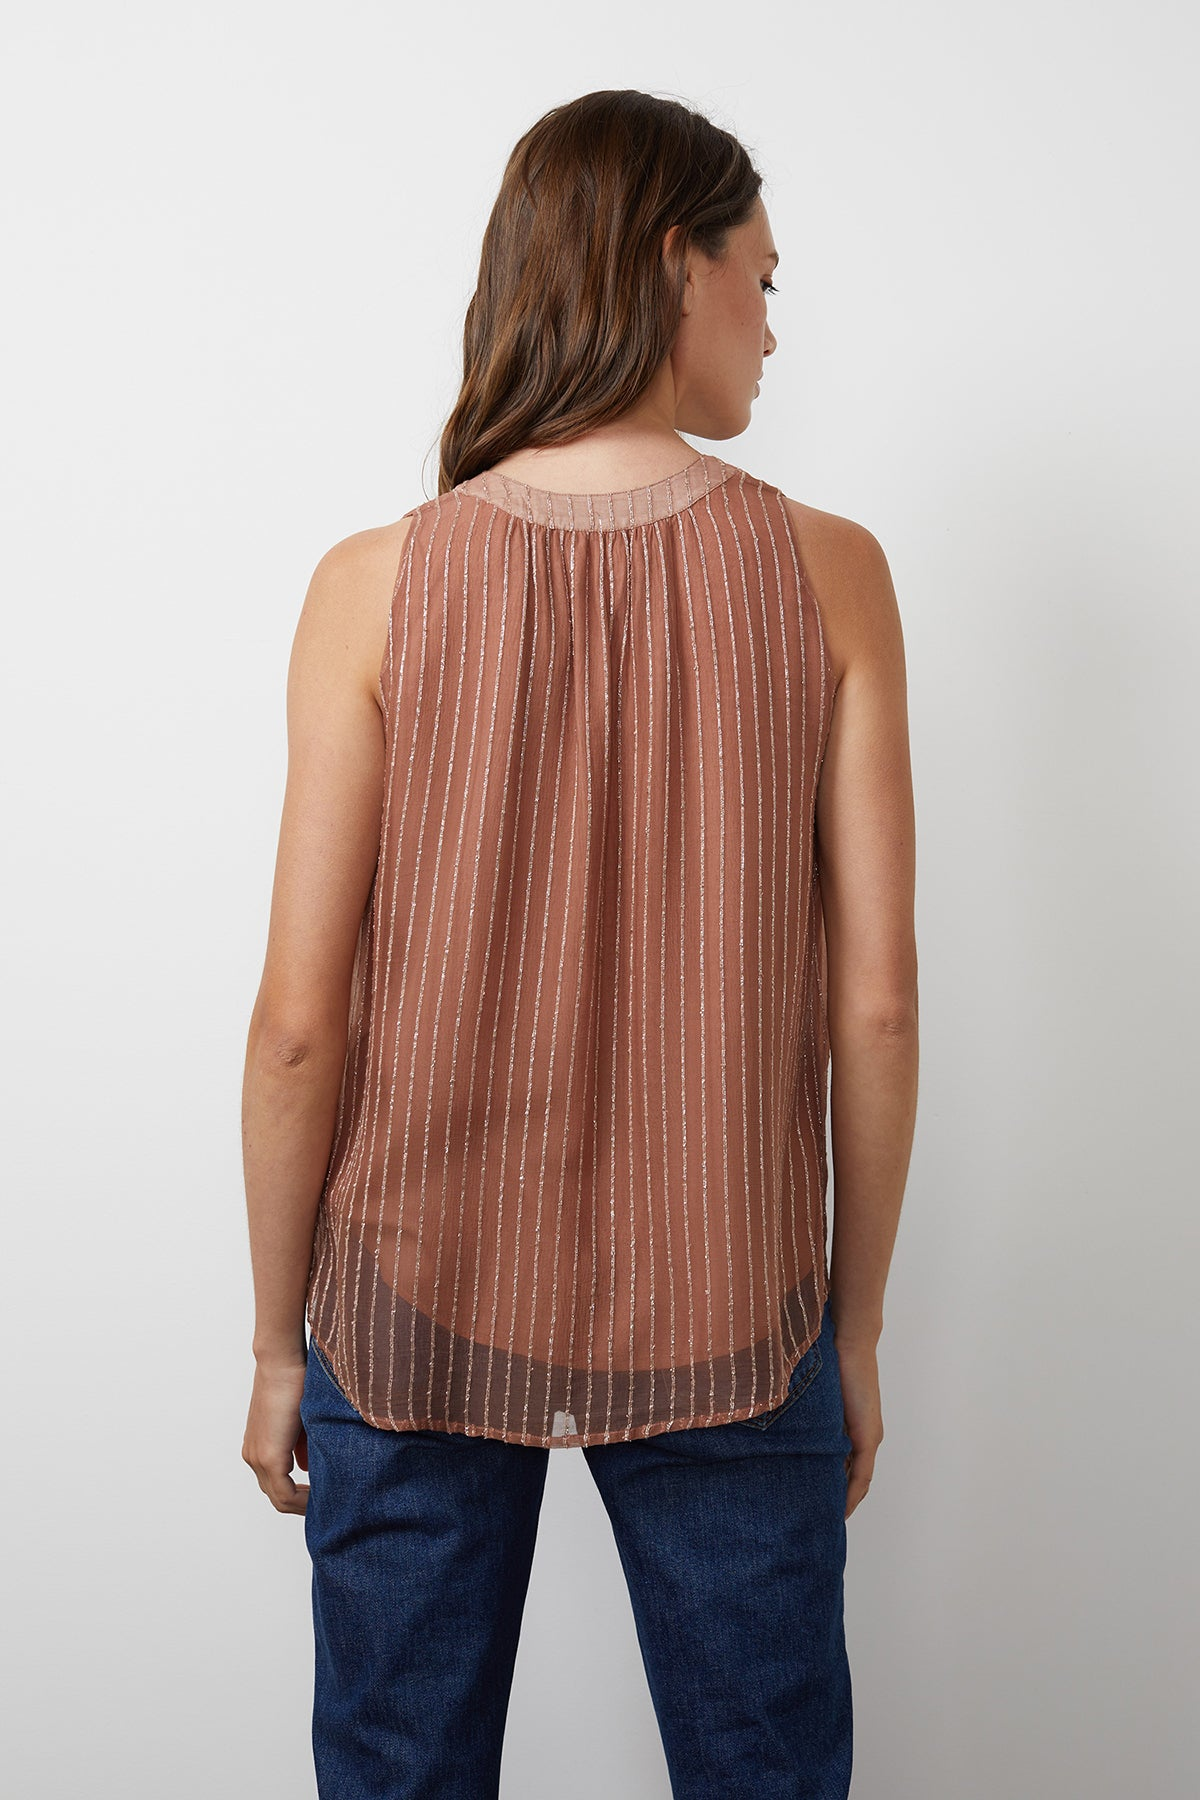 Pollie Top Blush Back